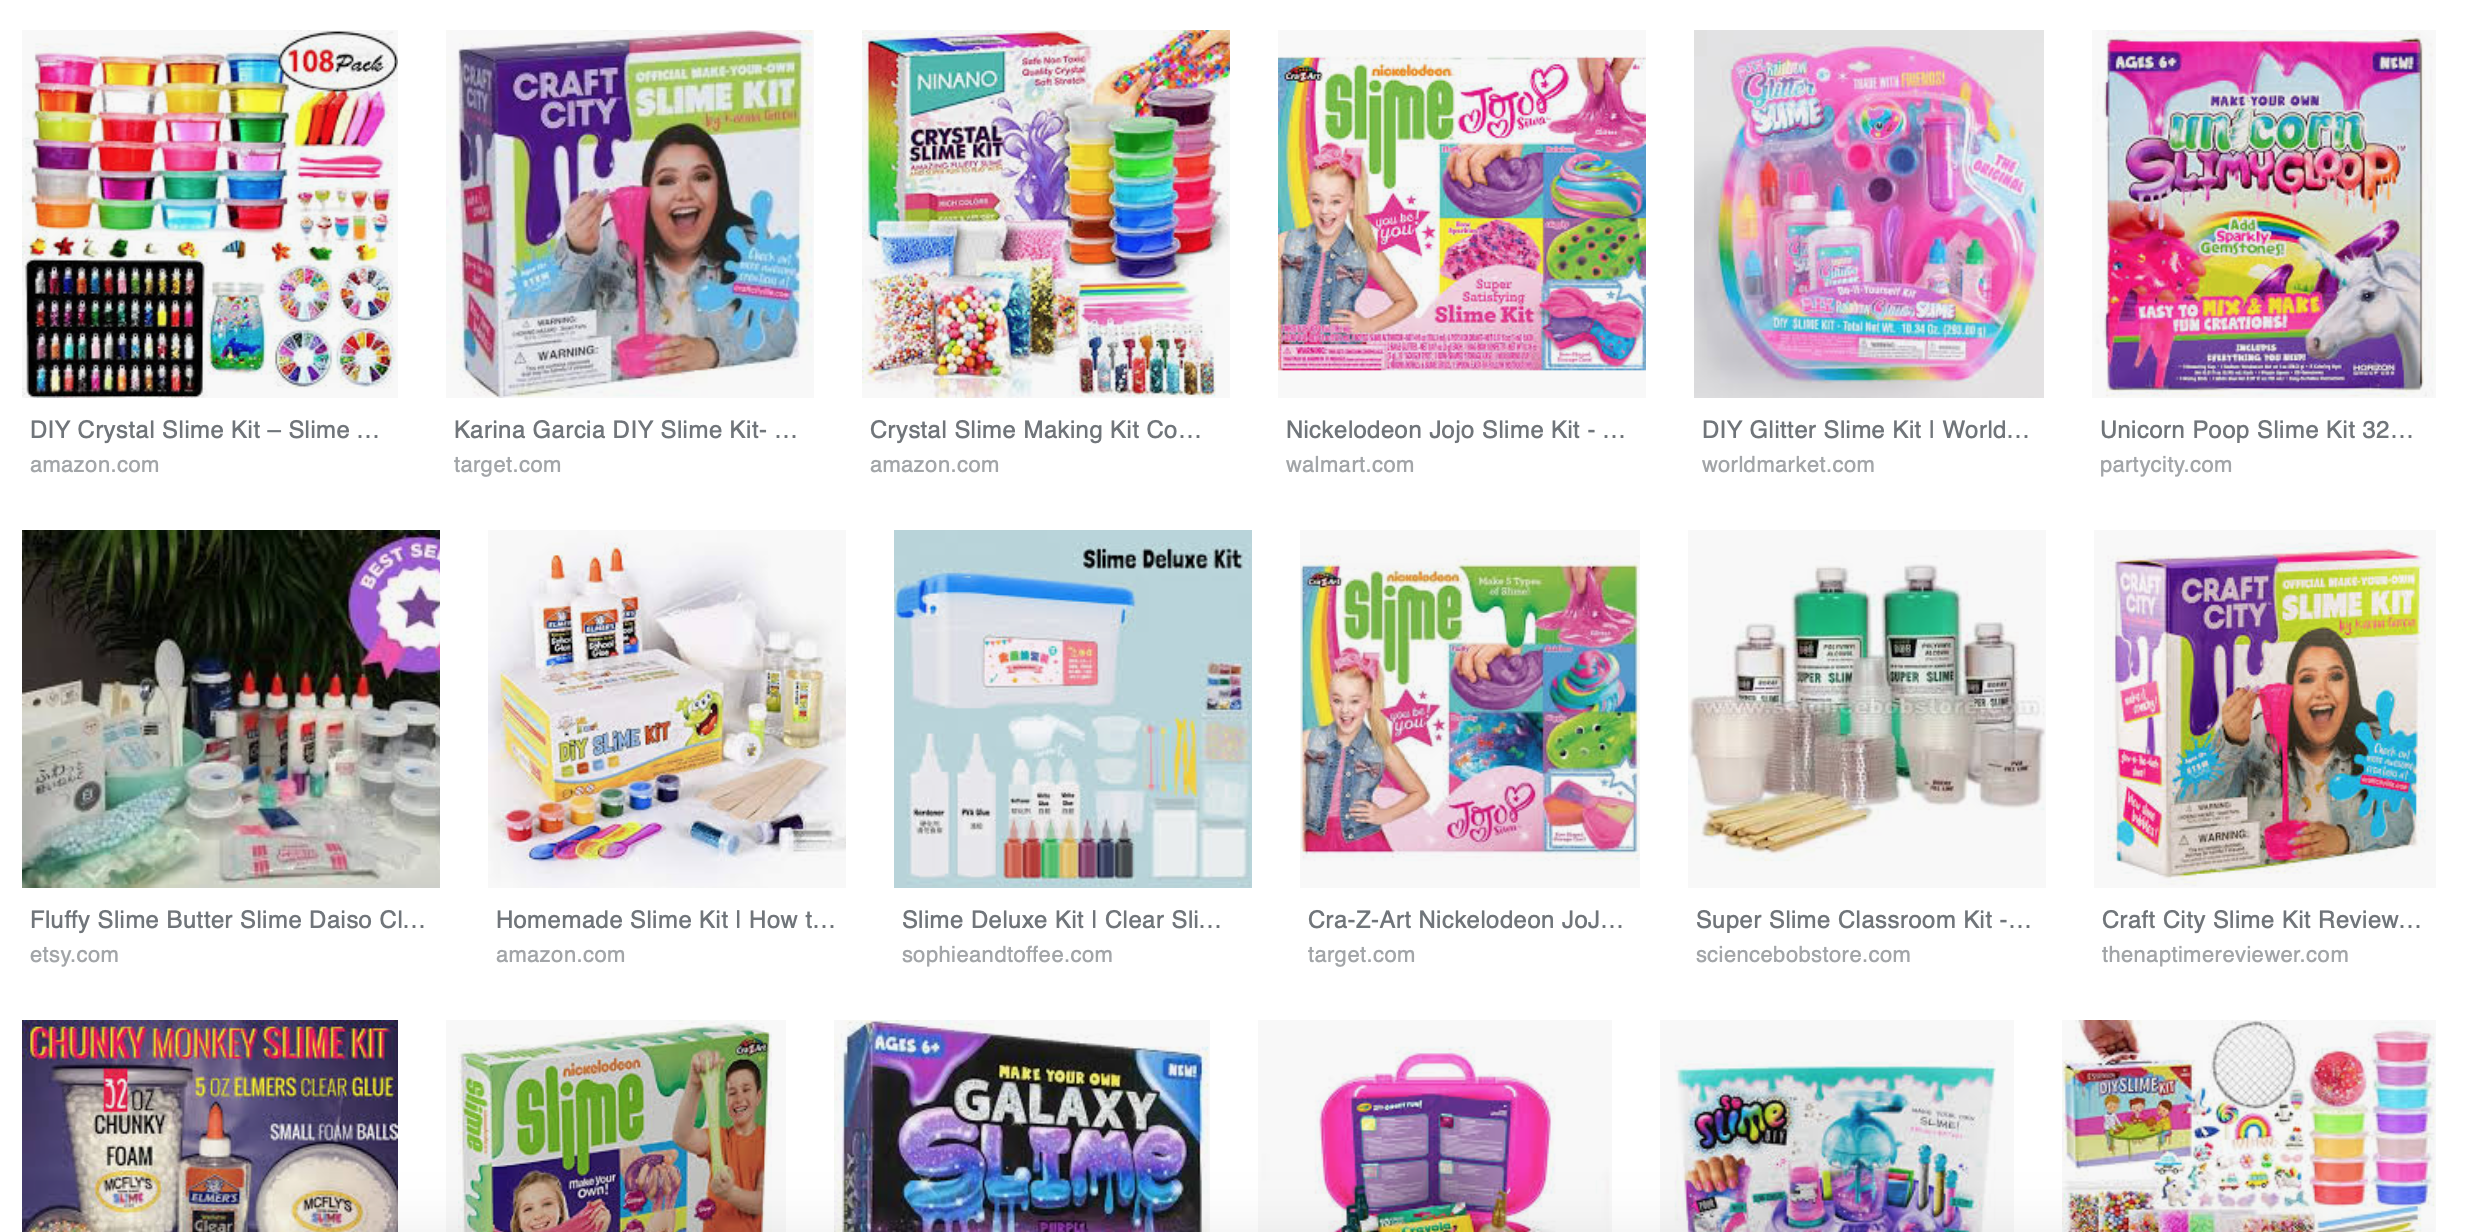 Pictures of slime kits on google images